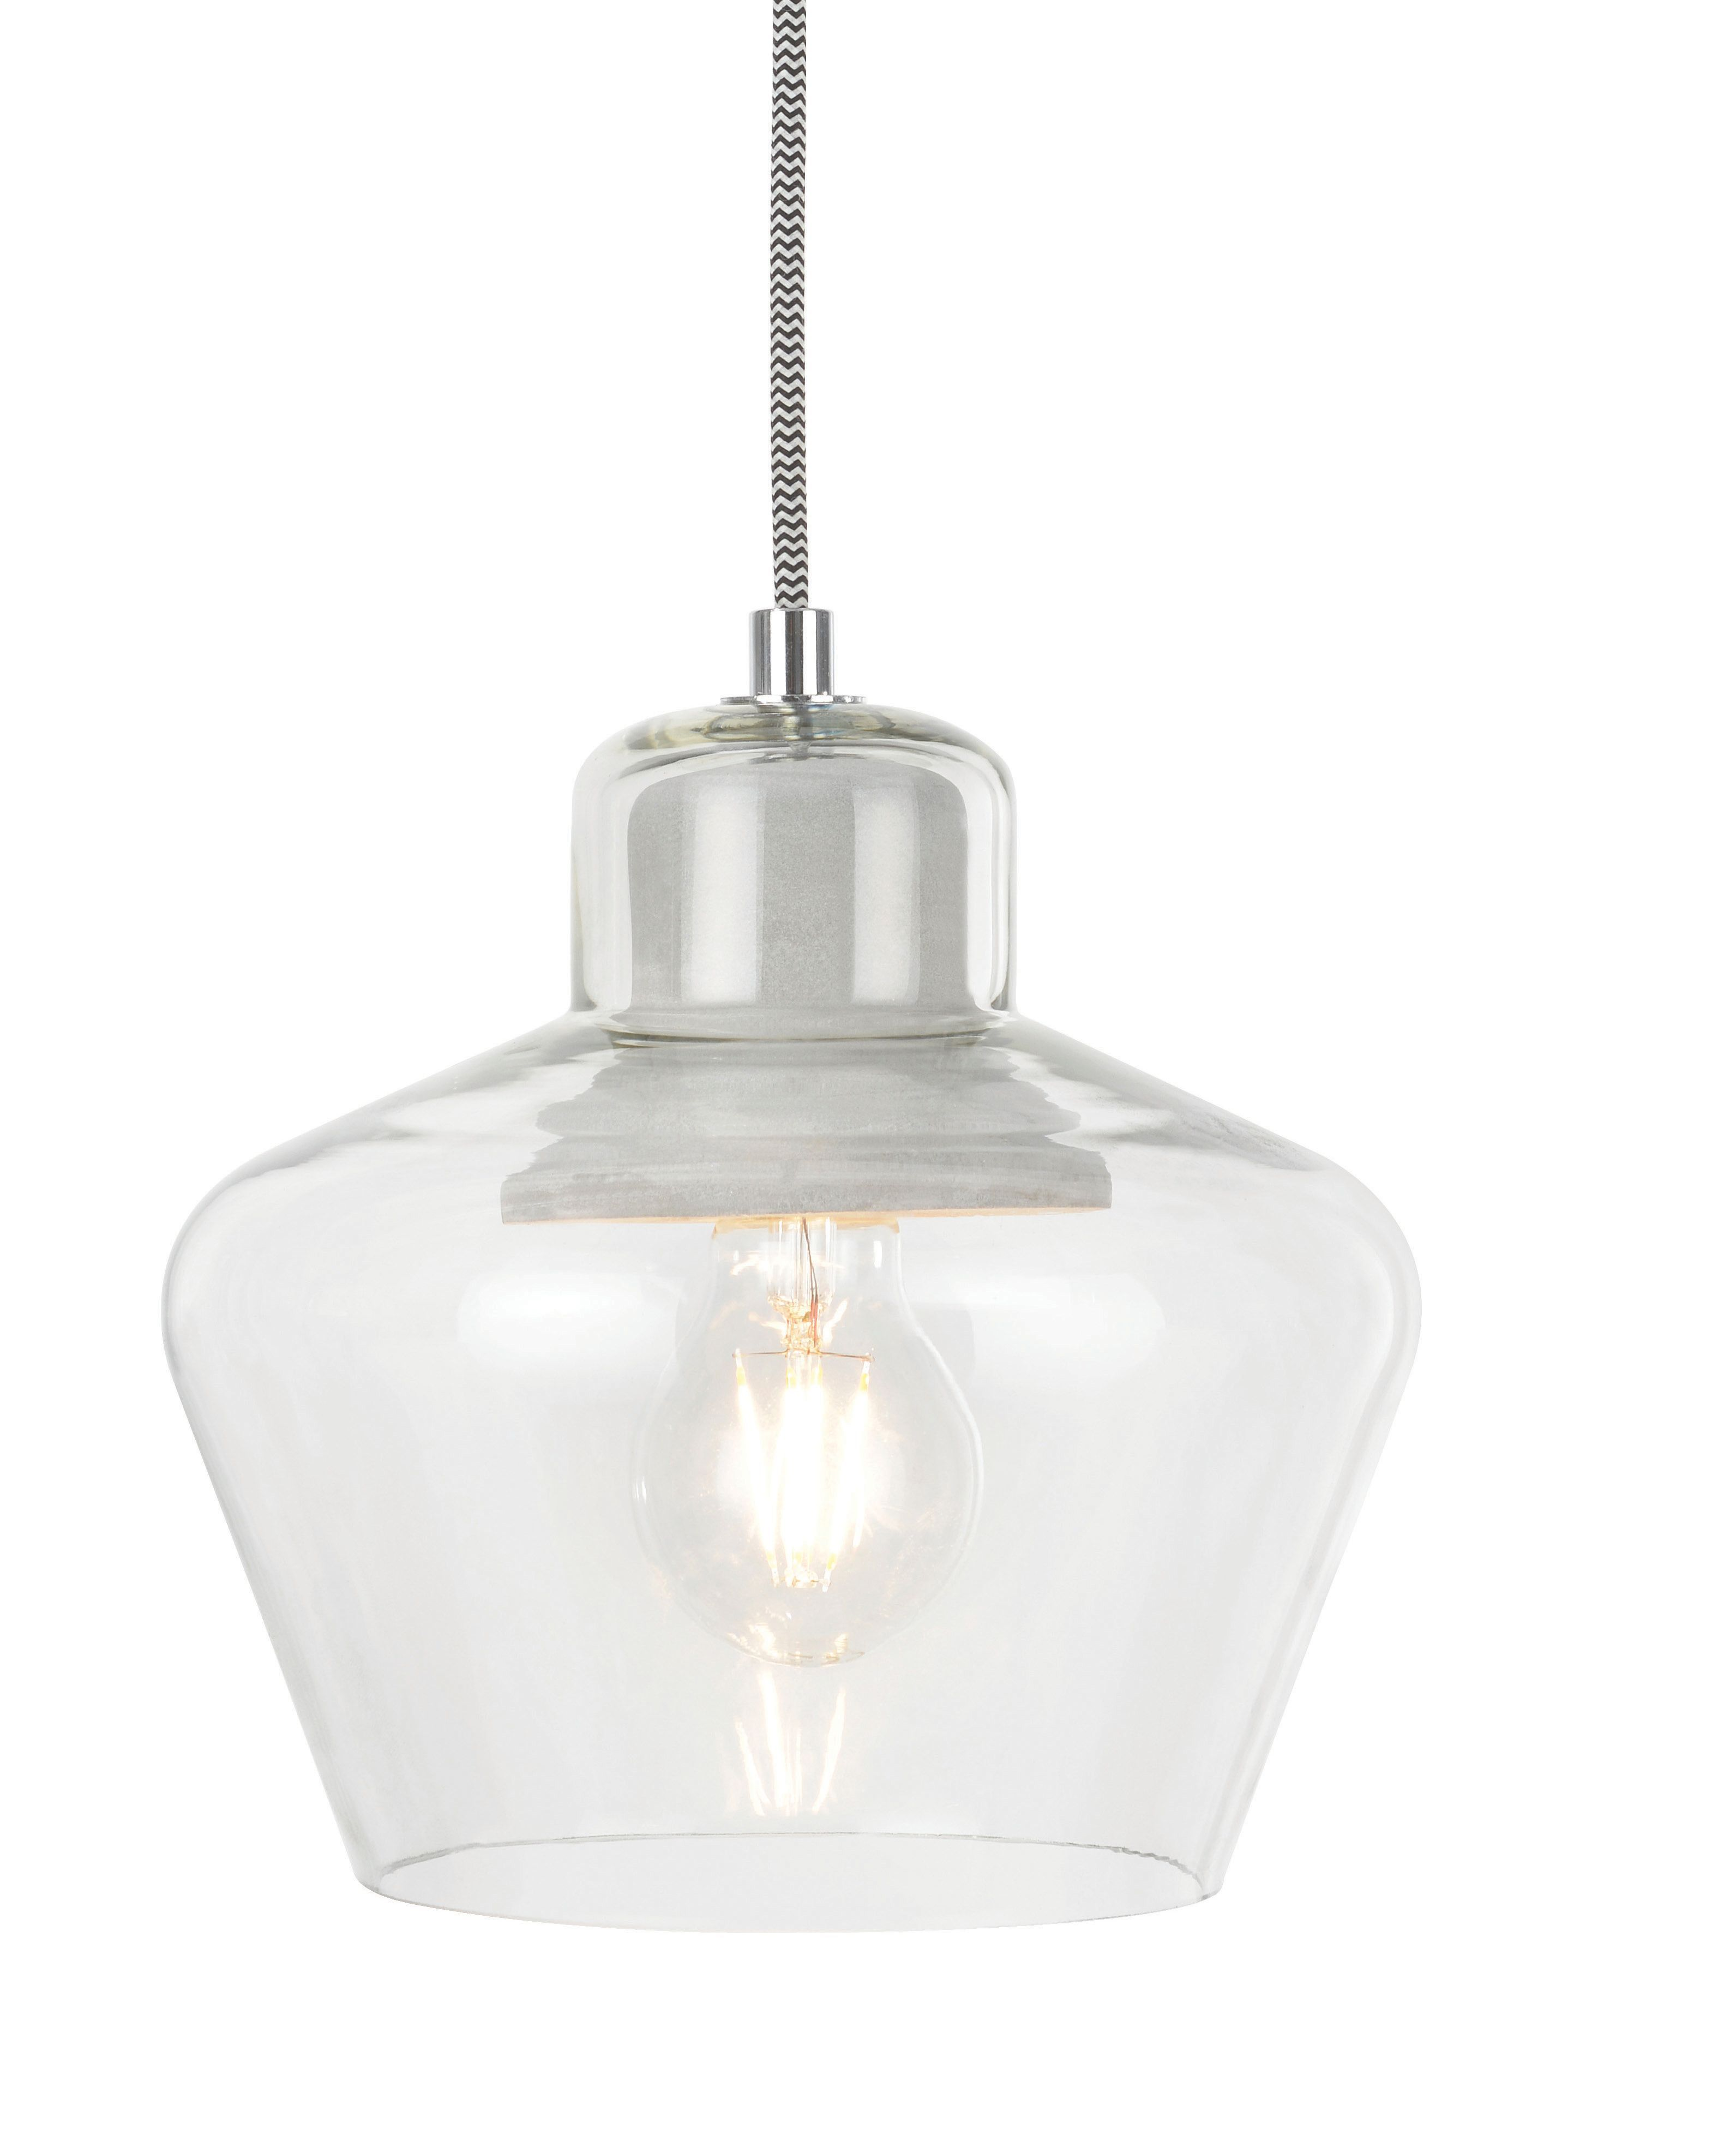 Jidda clear pendant ceiling light small pinterest ceiling jidda clear pendant ceiling light small departments diy at bq mozeypictures Image collections